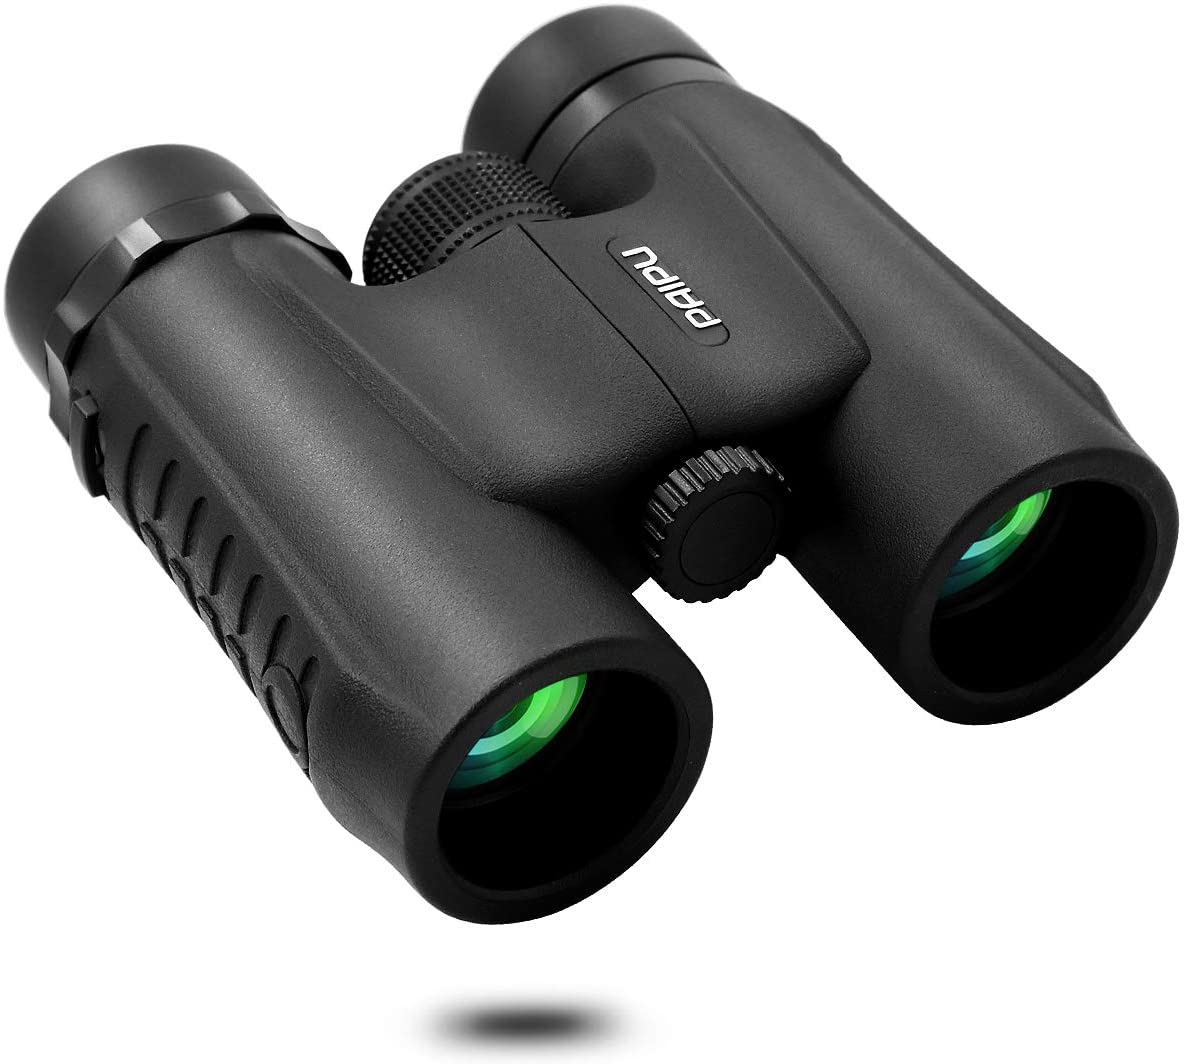 Top 10 Best Compact Binoculars 2020 Reviews 7